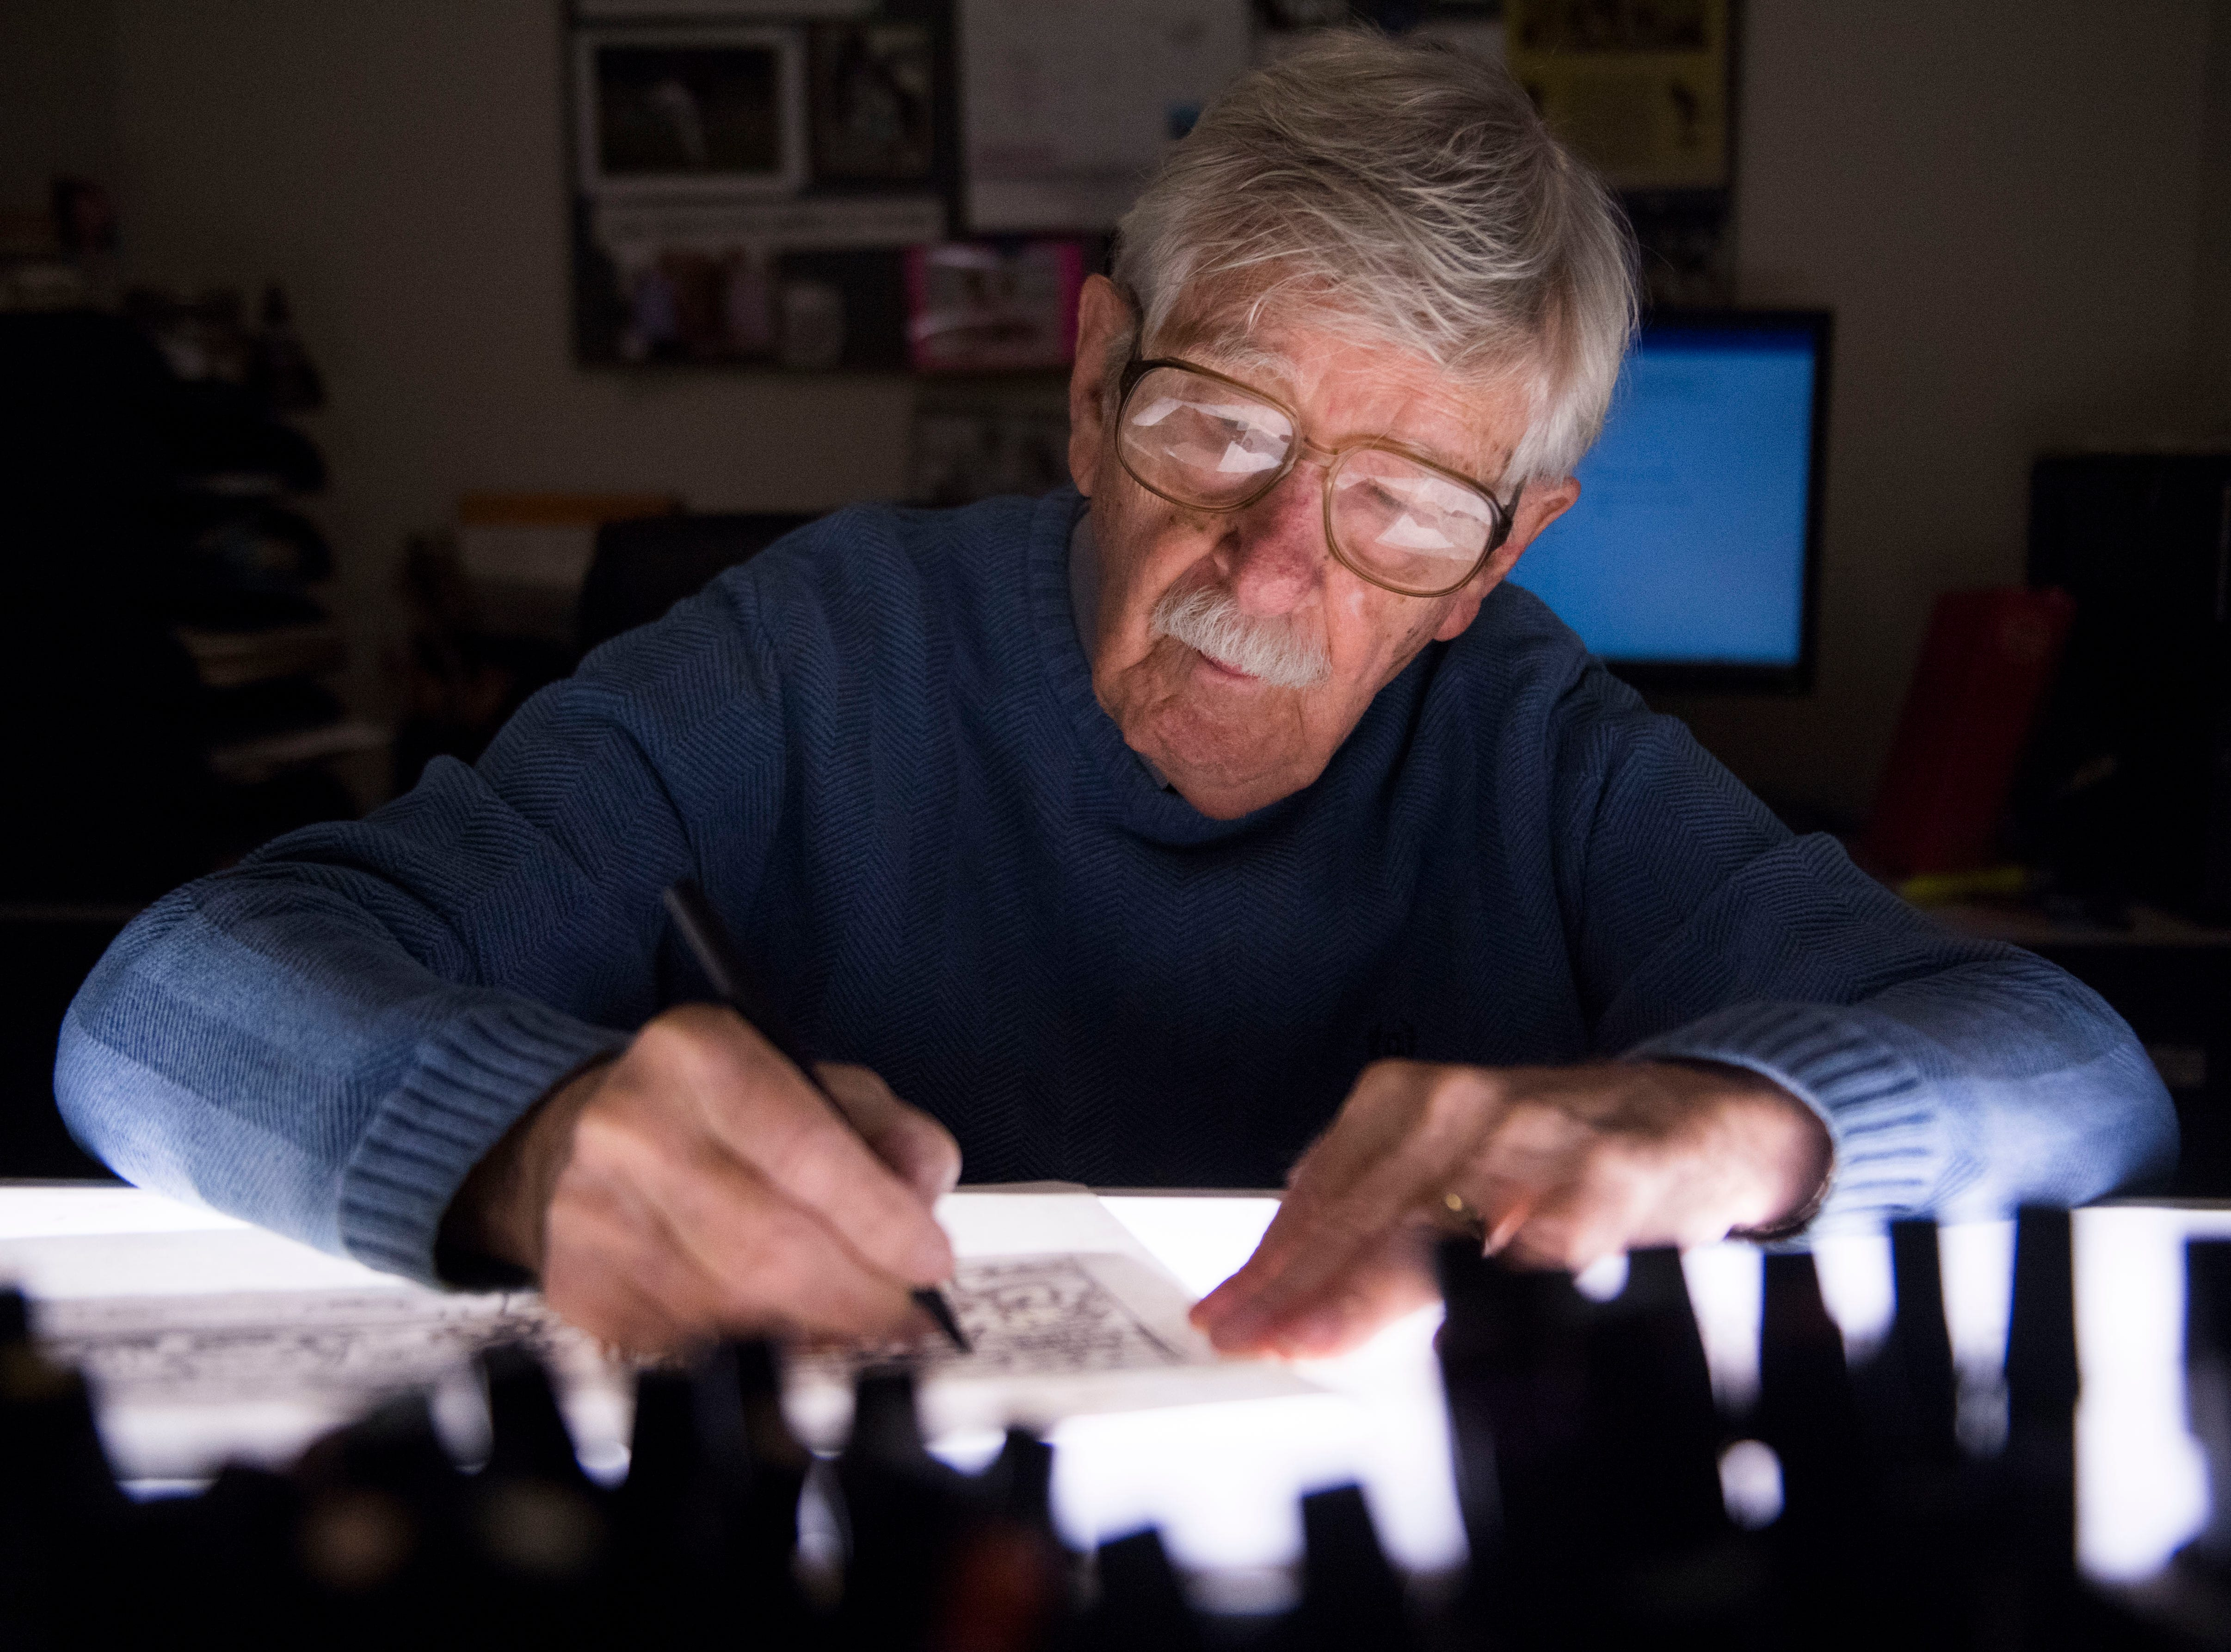 Charlie Daniel at his light table, 2018.